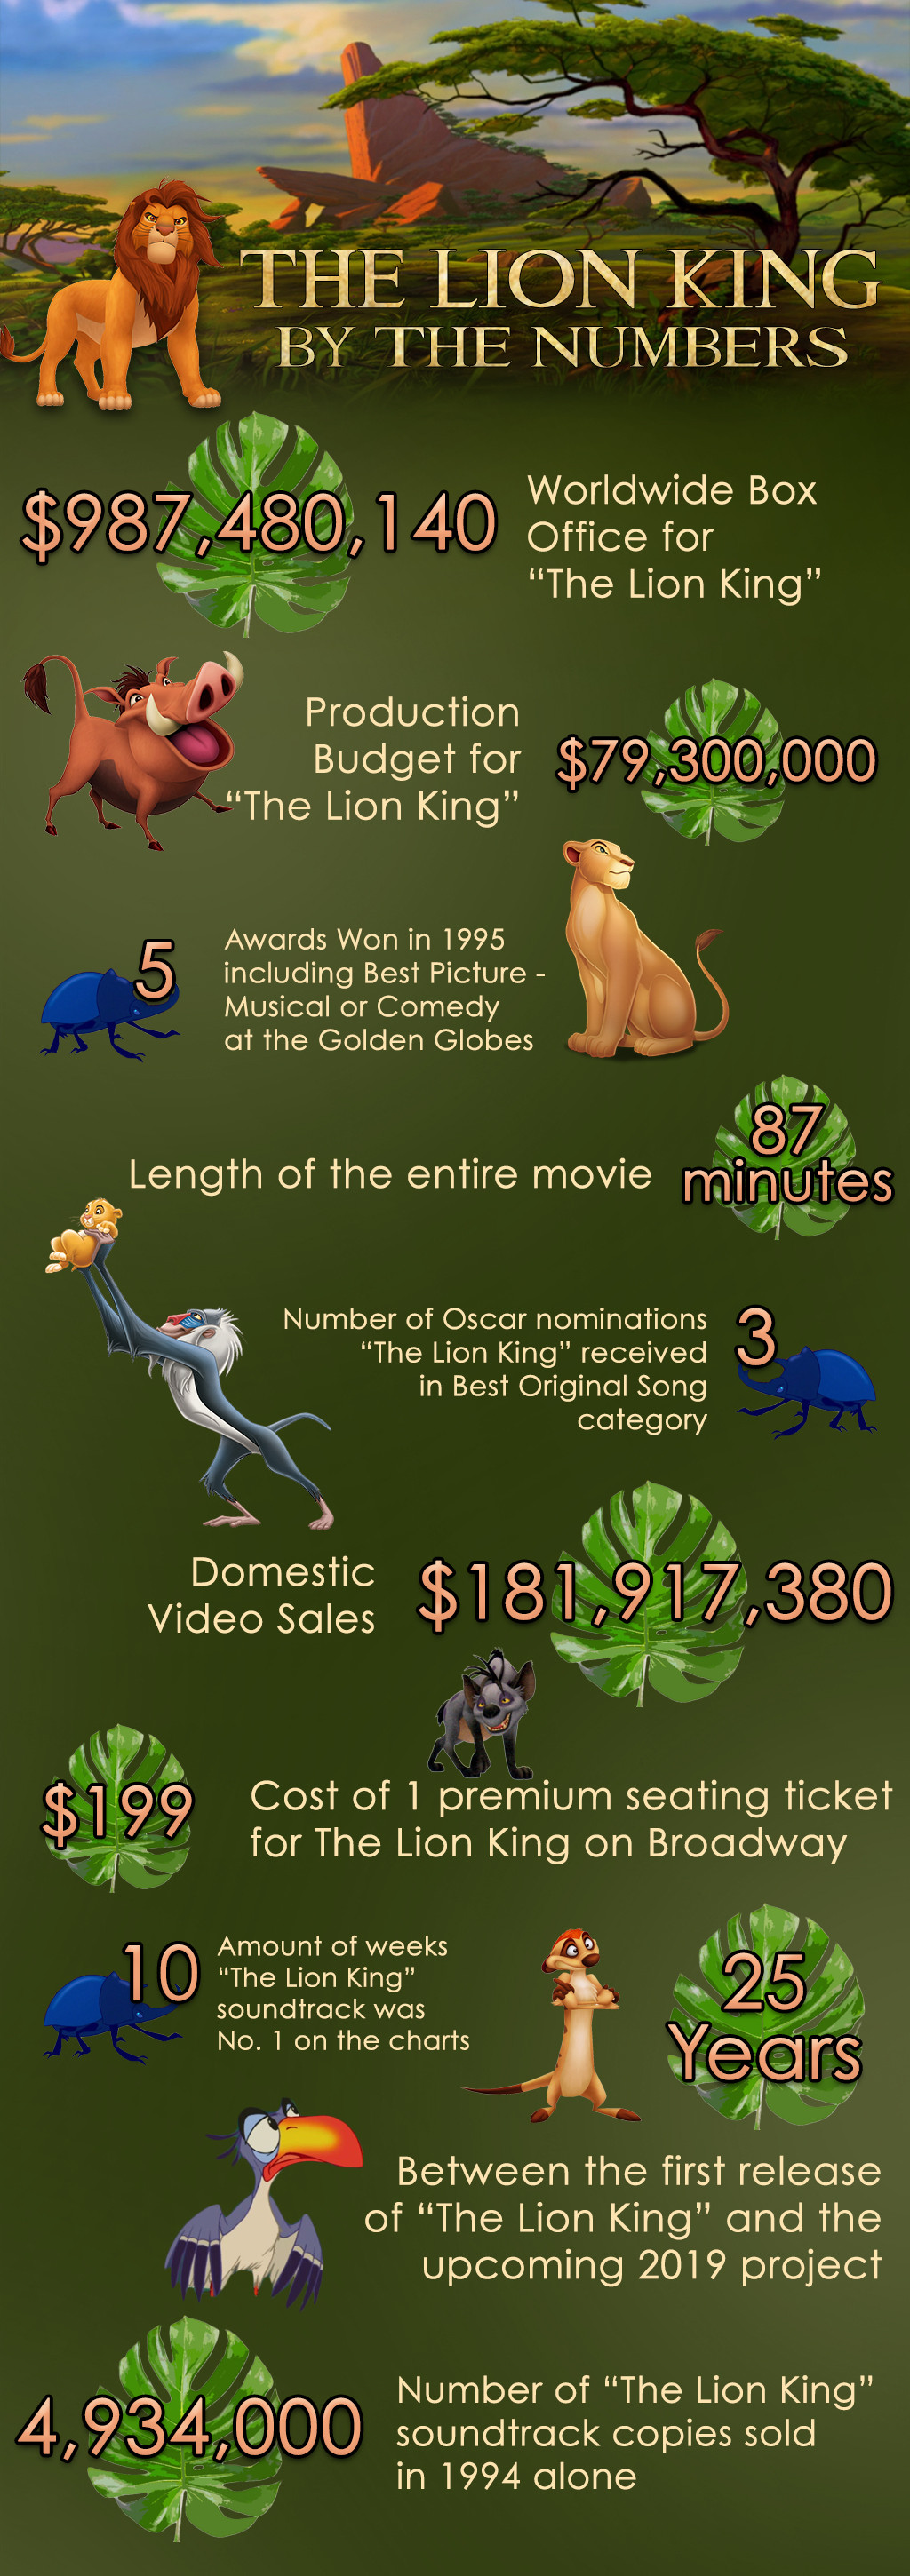 Celebrating Disney S The Lion King By The Numbers E Online